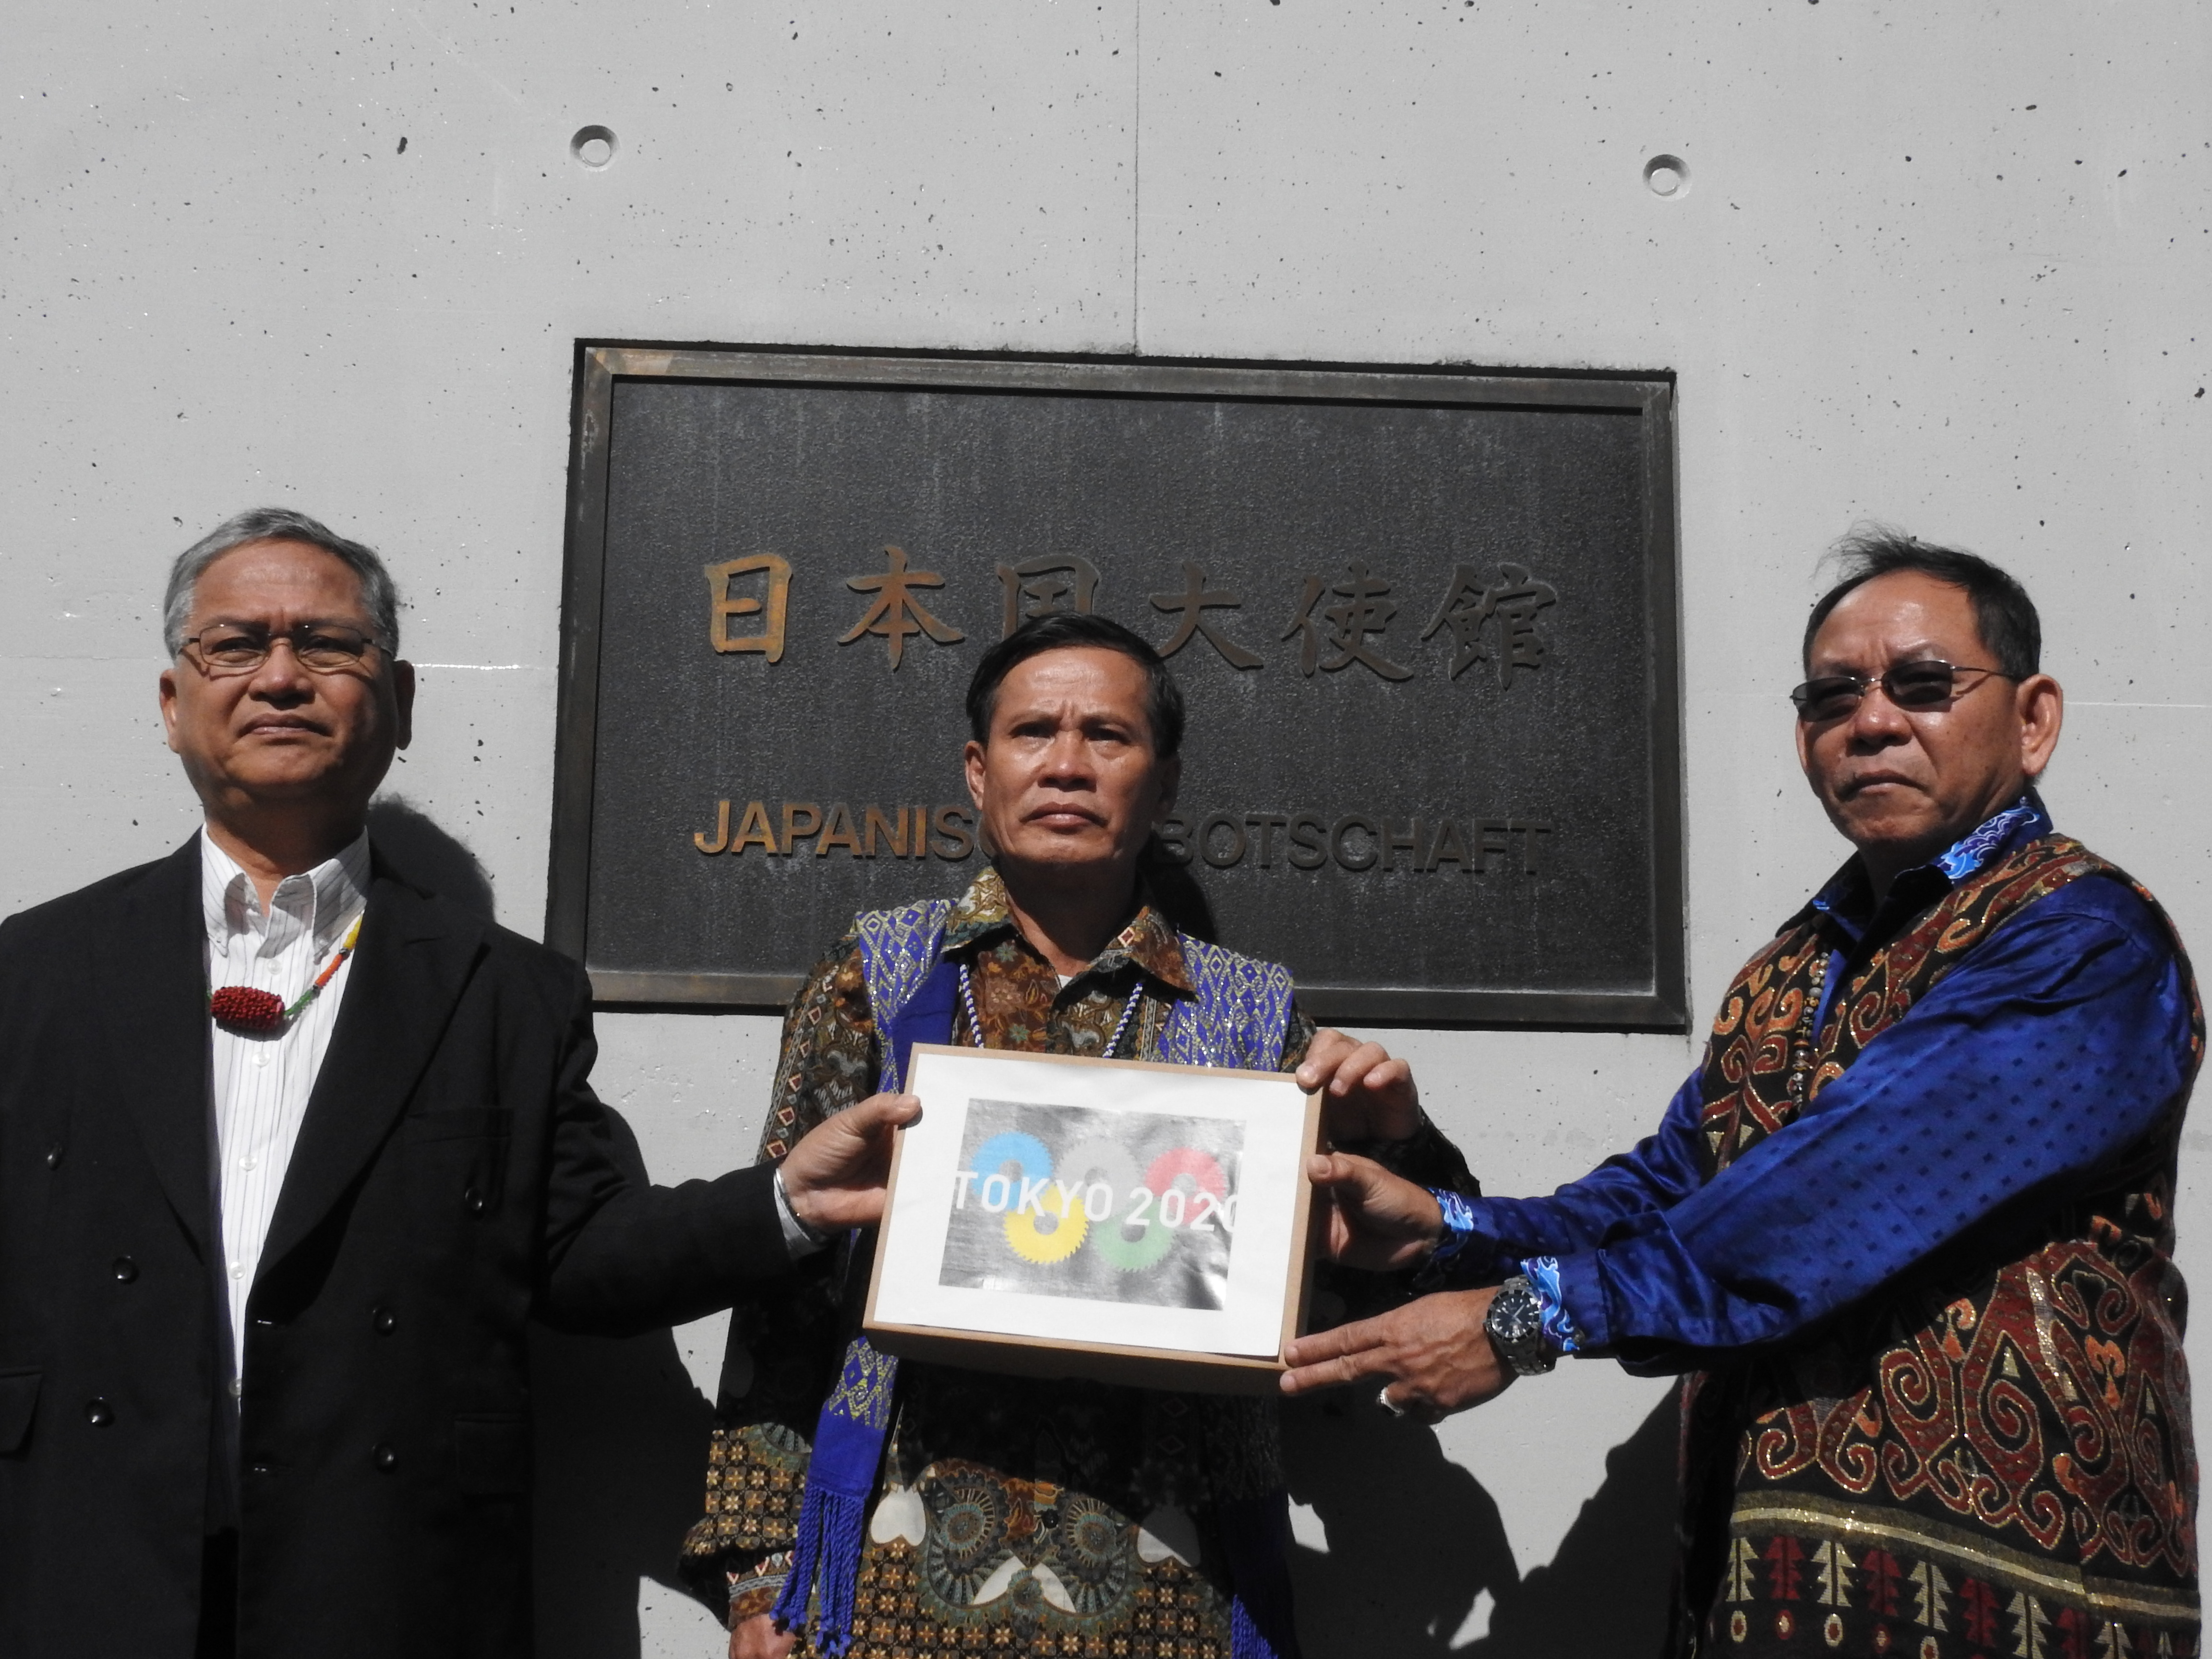 Indigenous_delegation_petition_Japanese_Embassy_Bern_Switzerland_creditBMF.JPG